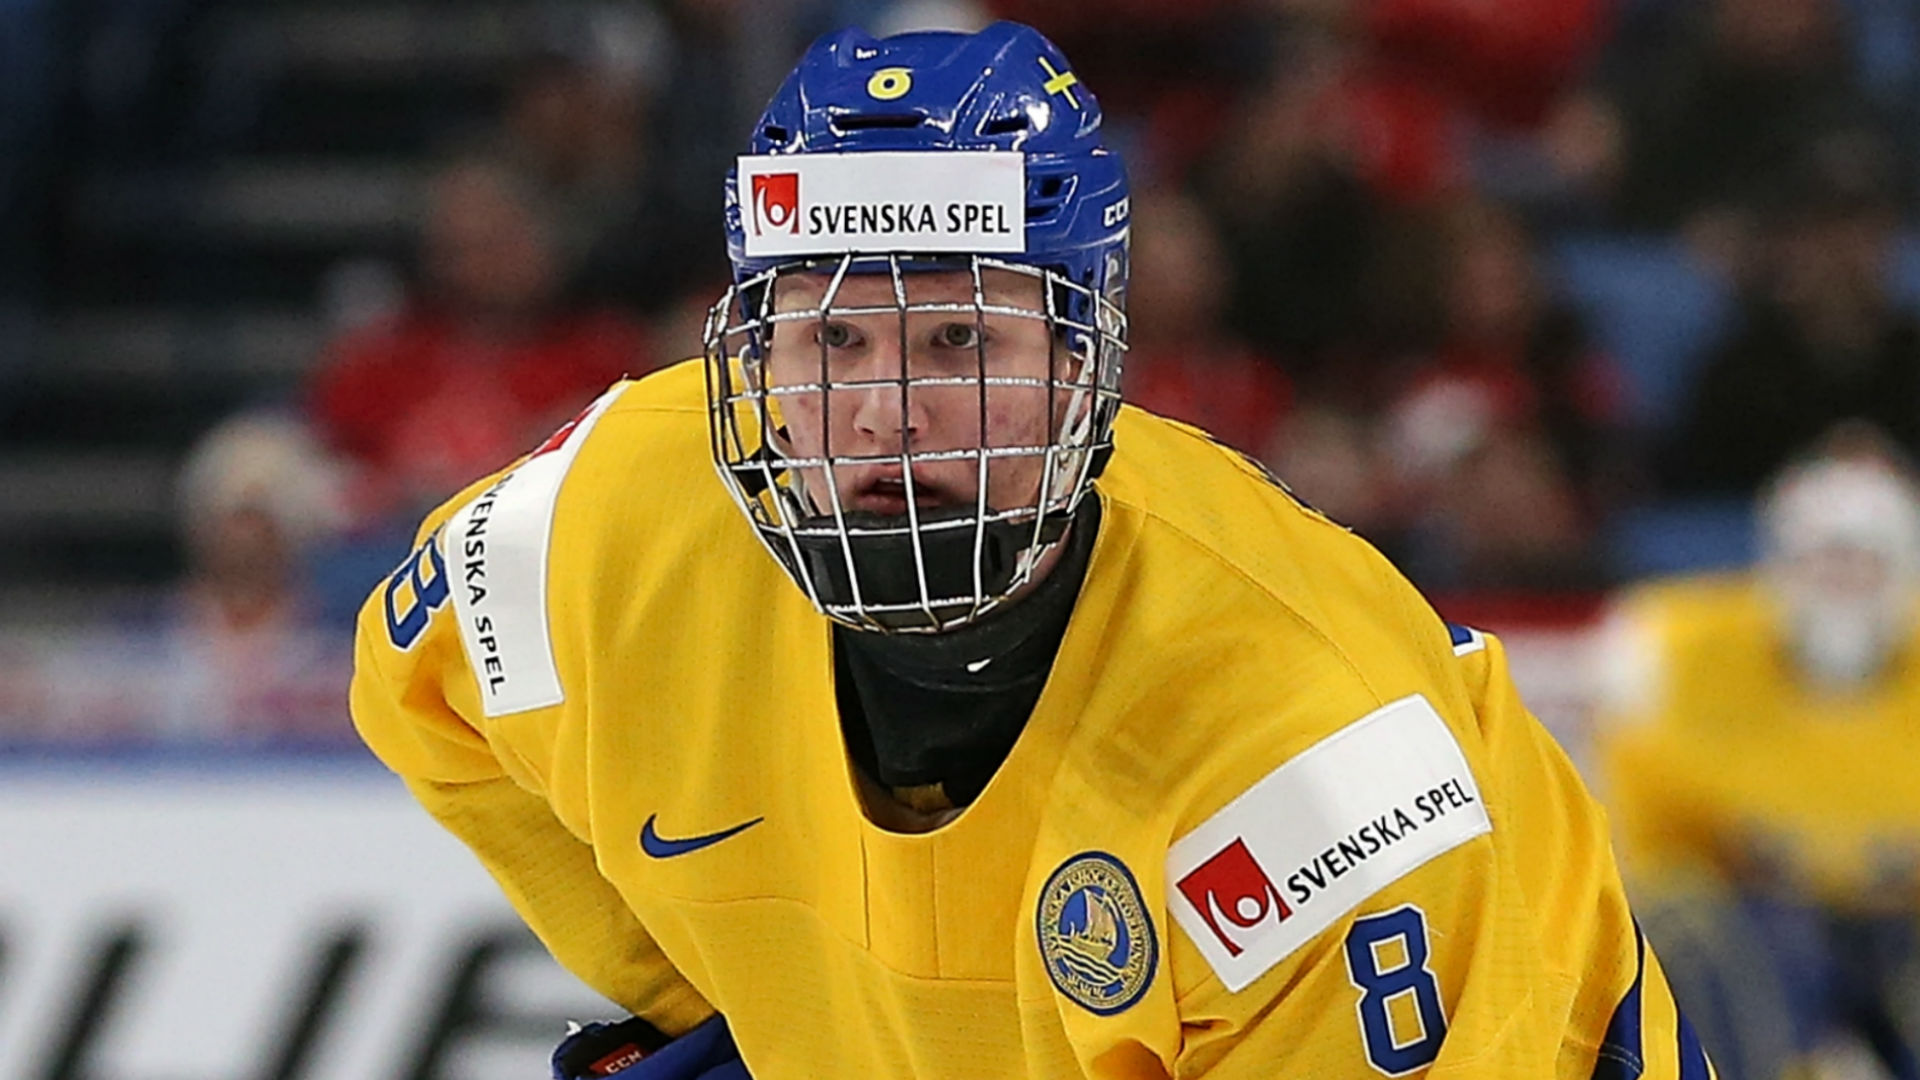 rasmus-dahlin-031318-getty-ftr.jpg